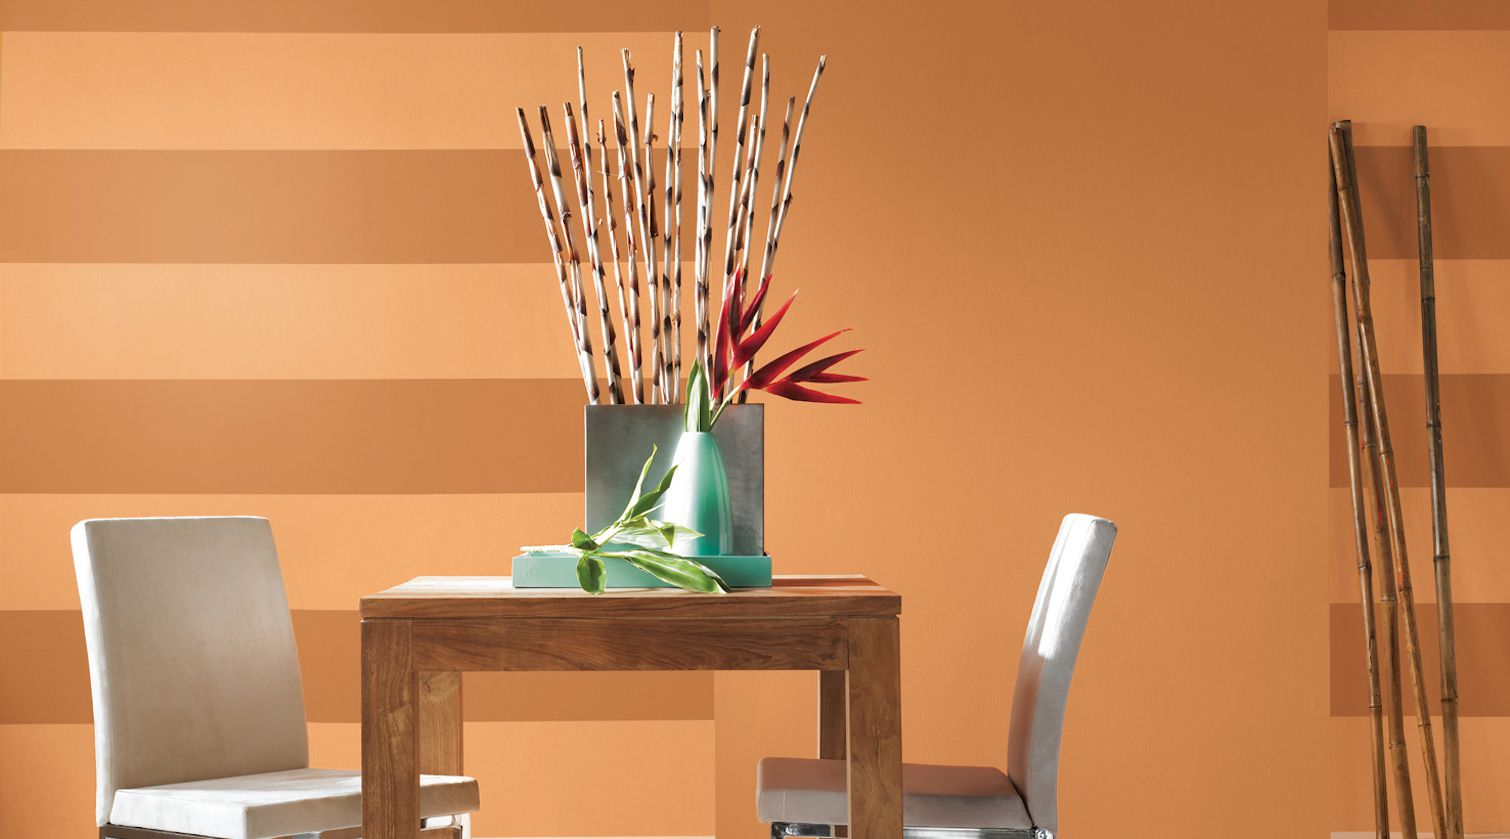 top 7 sherwin williams warm paint colors on paint colors by sherwin williams id=49865